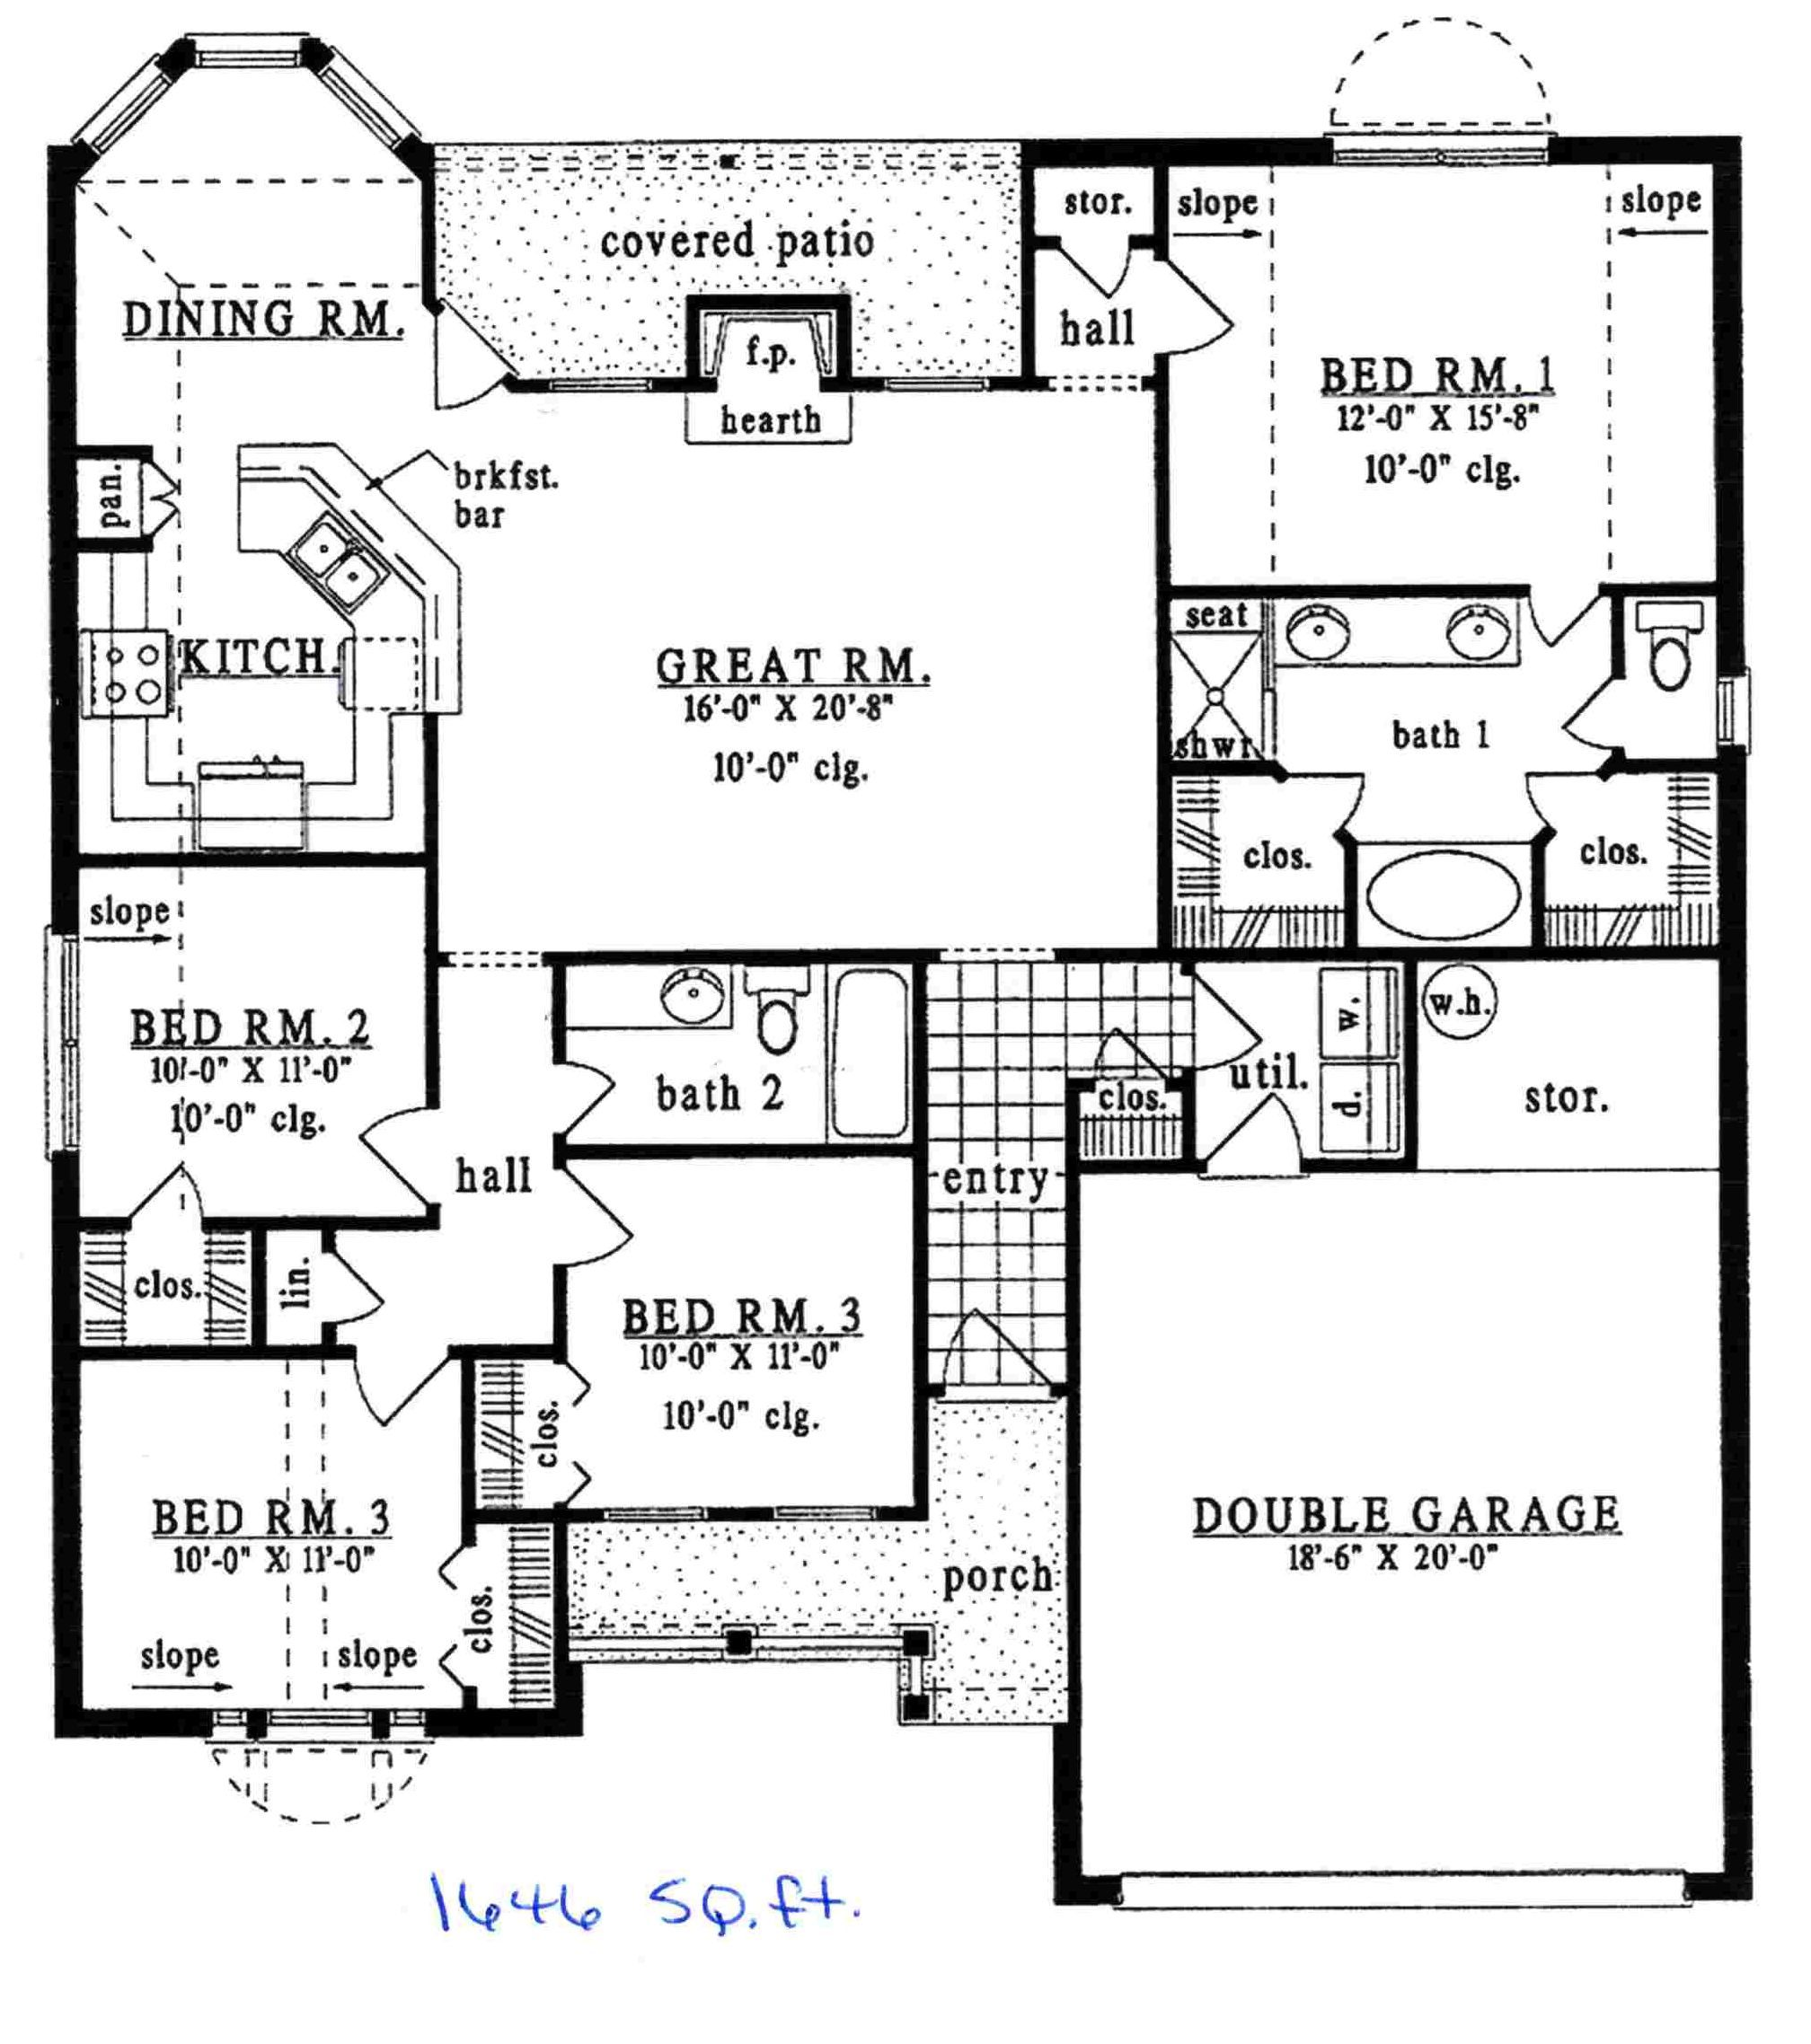 1500 Square Feet House Plans 1500 Sq Ft House Plans Peltier Builders Inc About Us